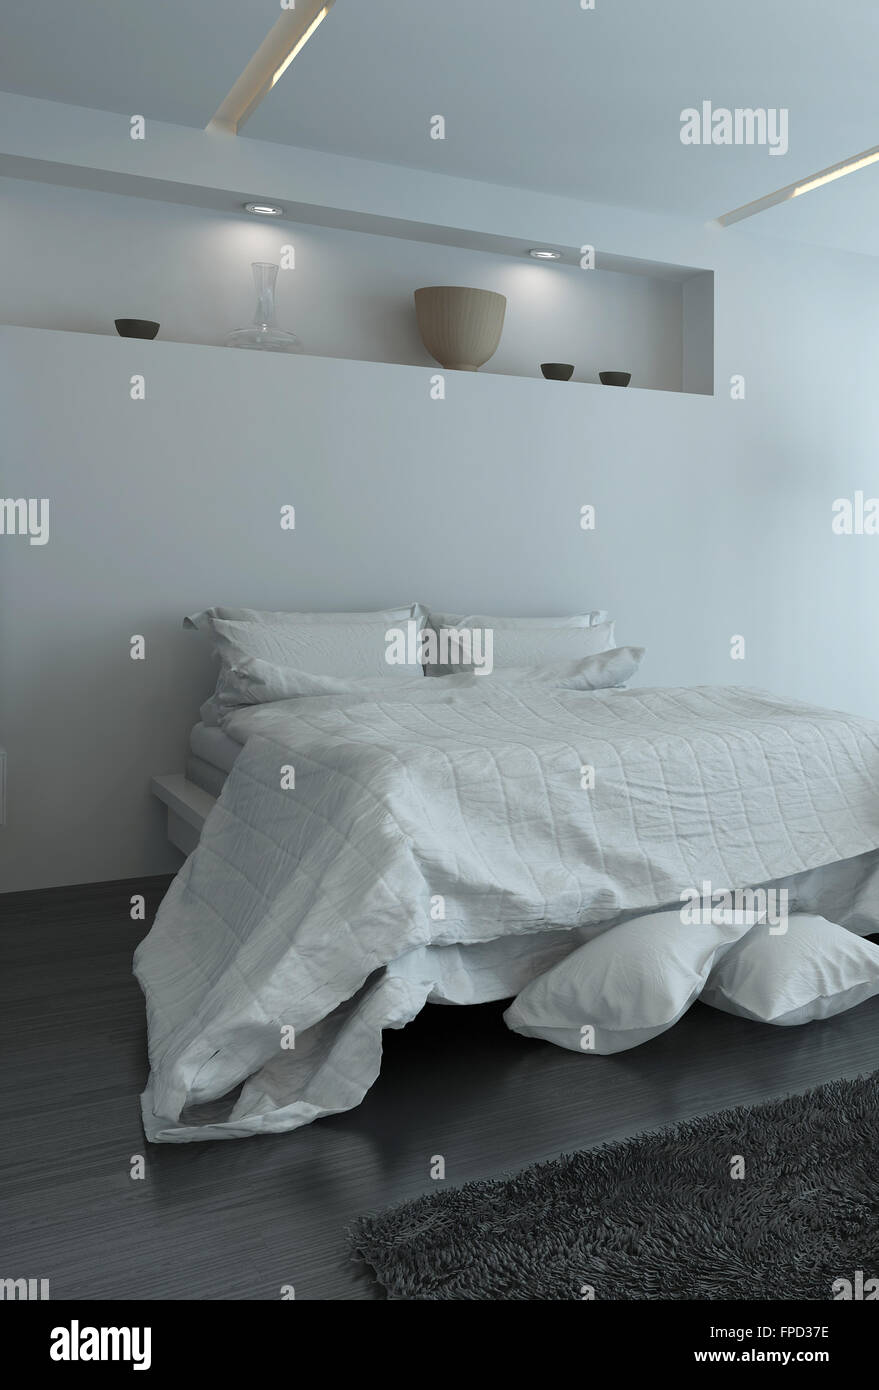 Double bed with large duvet and extra pillows on the floor in a modern white bedroom interior illuminated by recessed Stock Photo